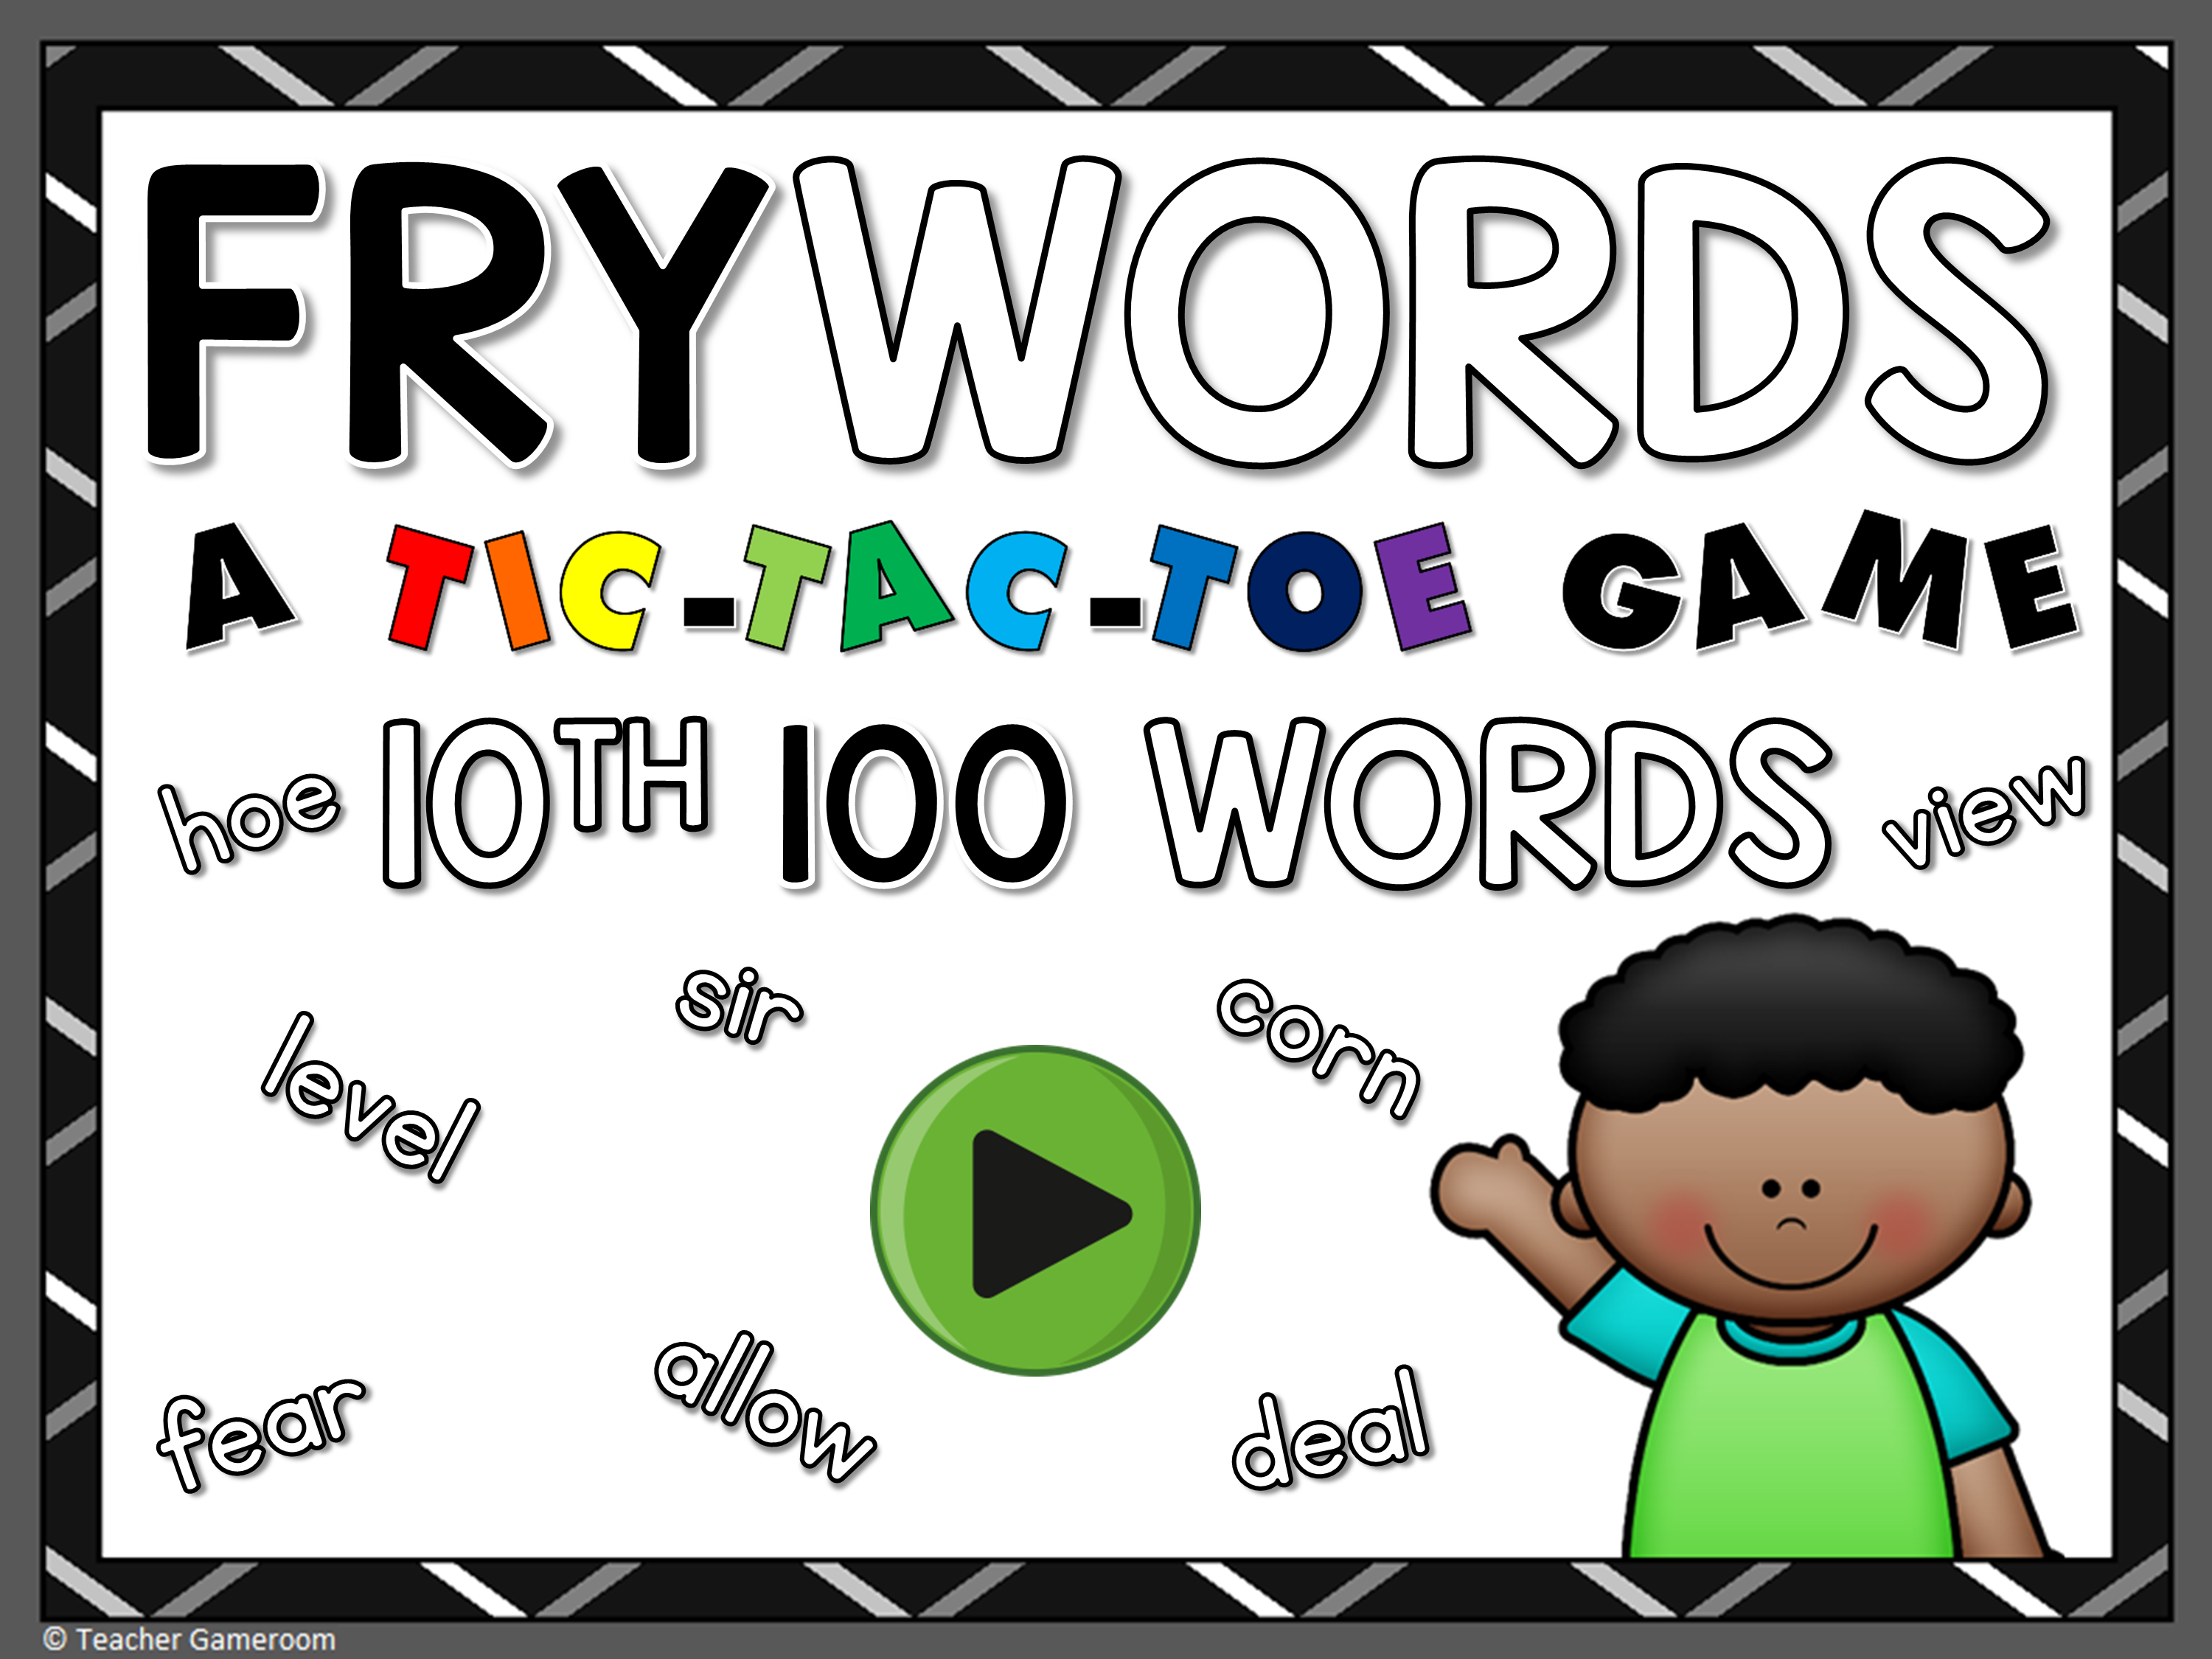 Tic-Tac-Toe Fry Words 10th 100 Game